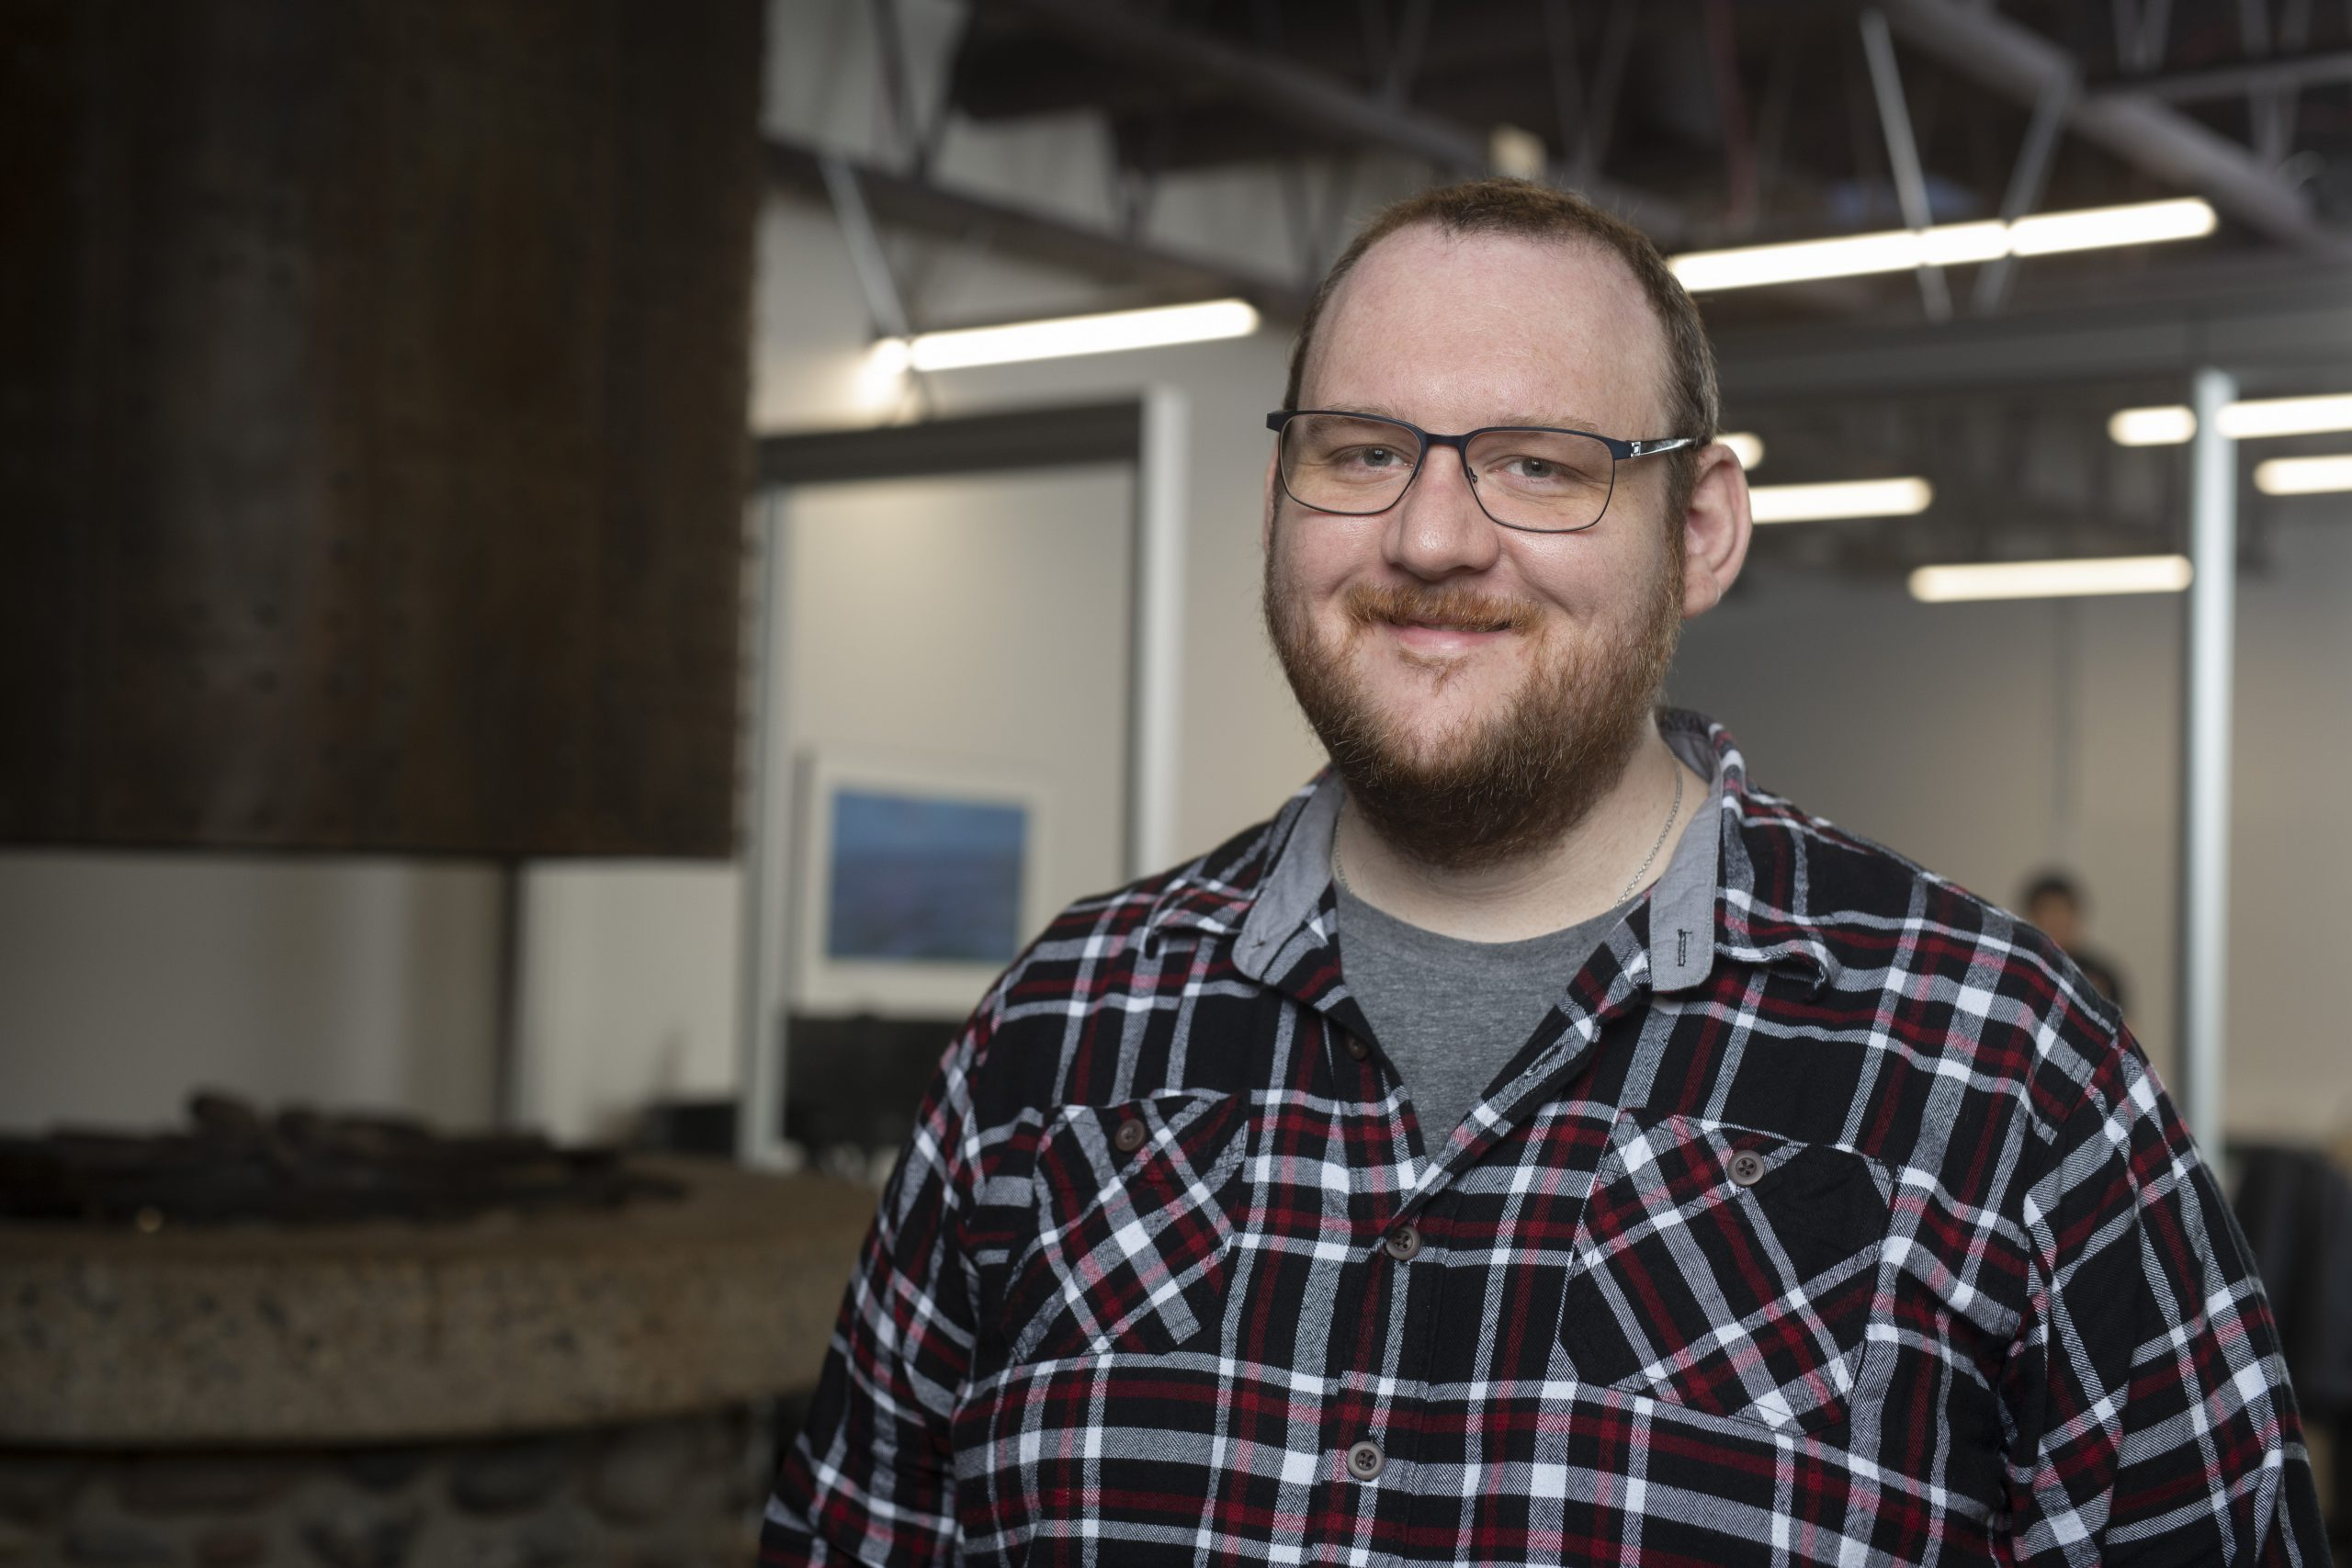 Daniel Blanche; Software Developer